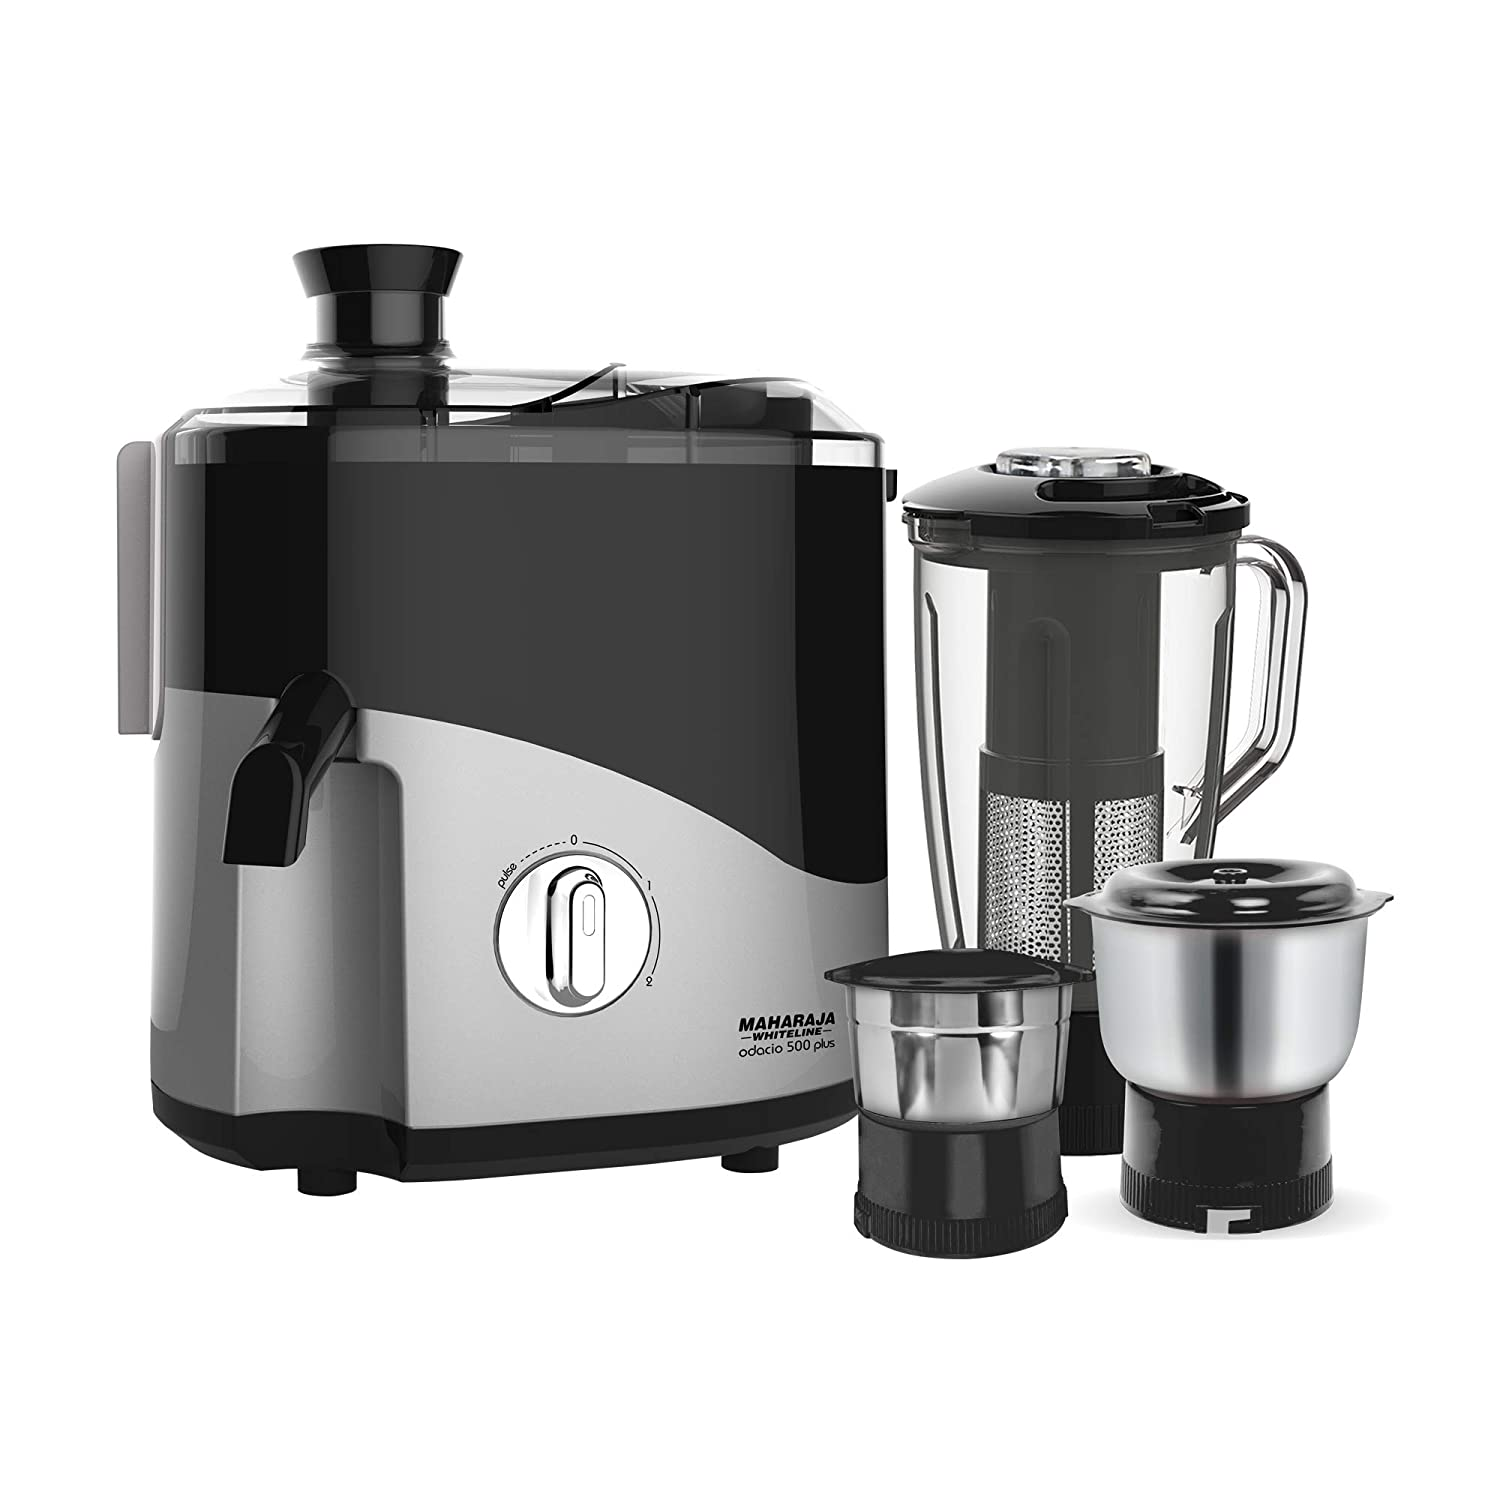 Maharaja Whiteline Jmg Odacio Plus 500-Watt Juicer Mixer